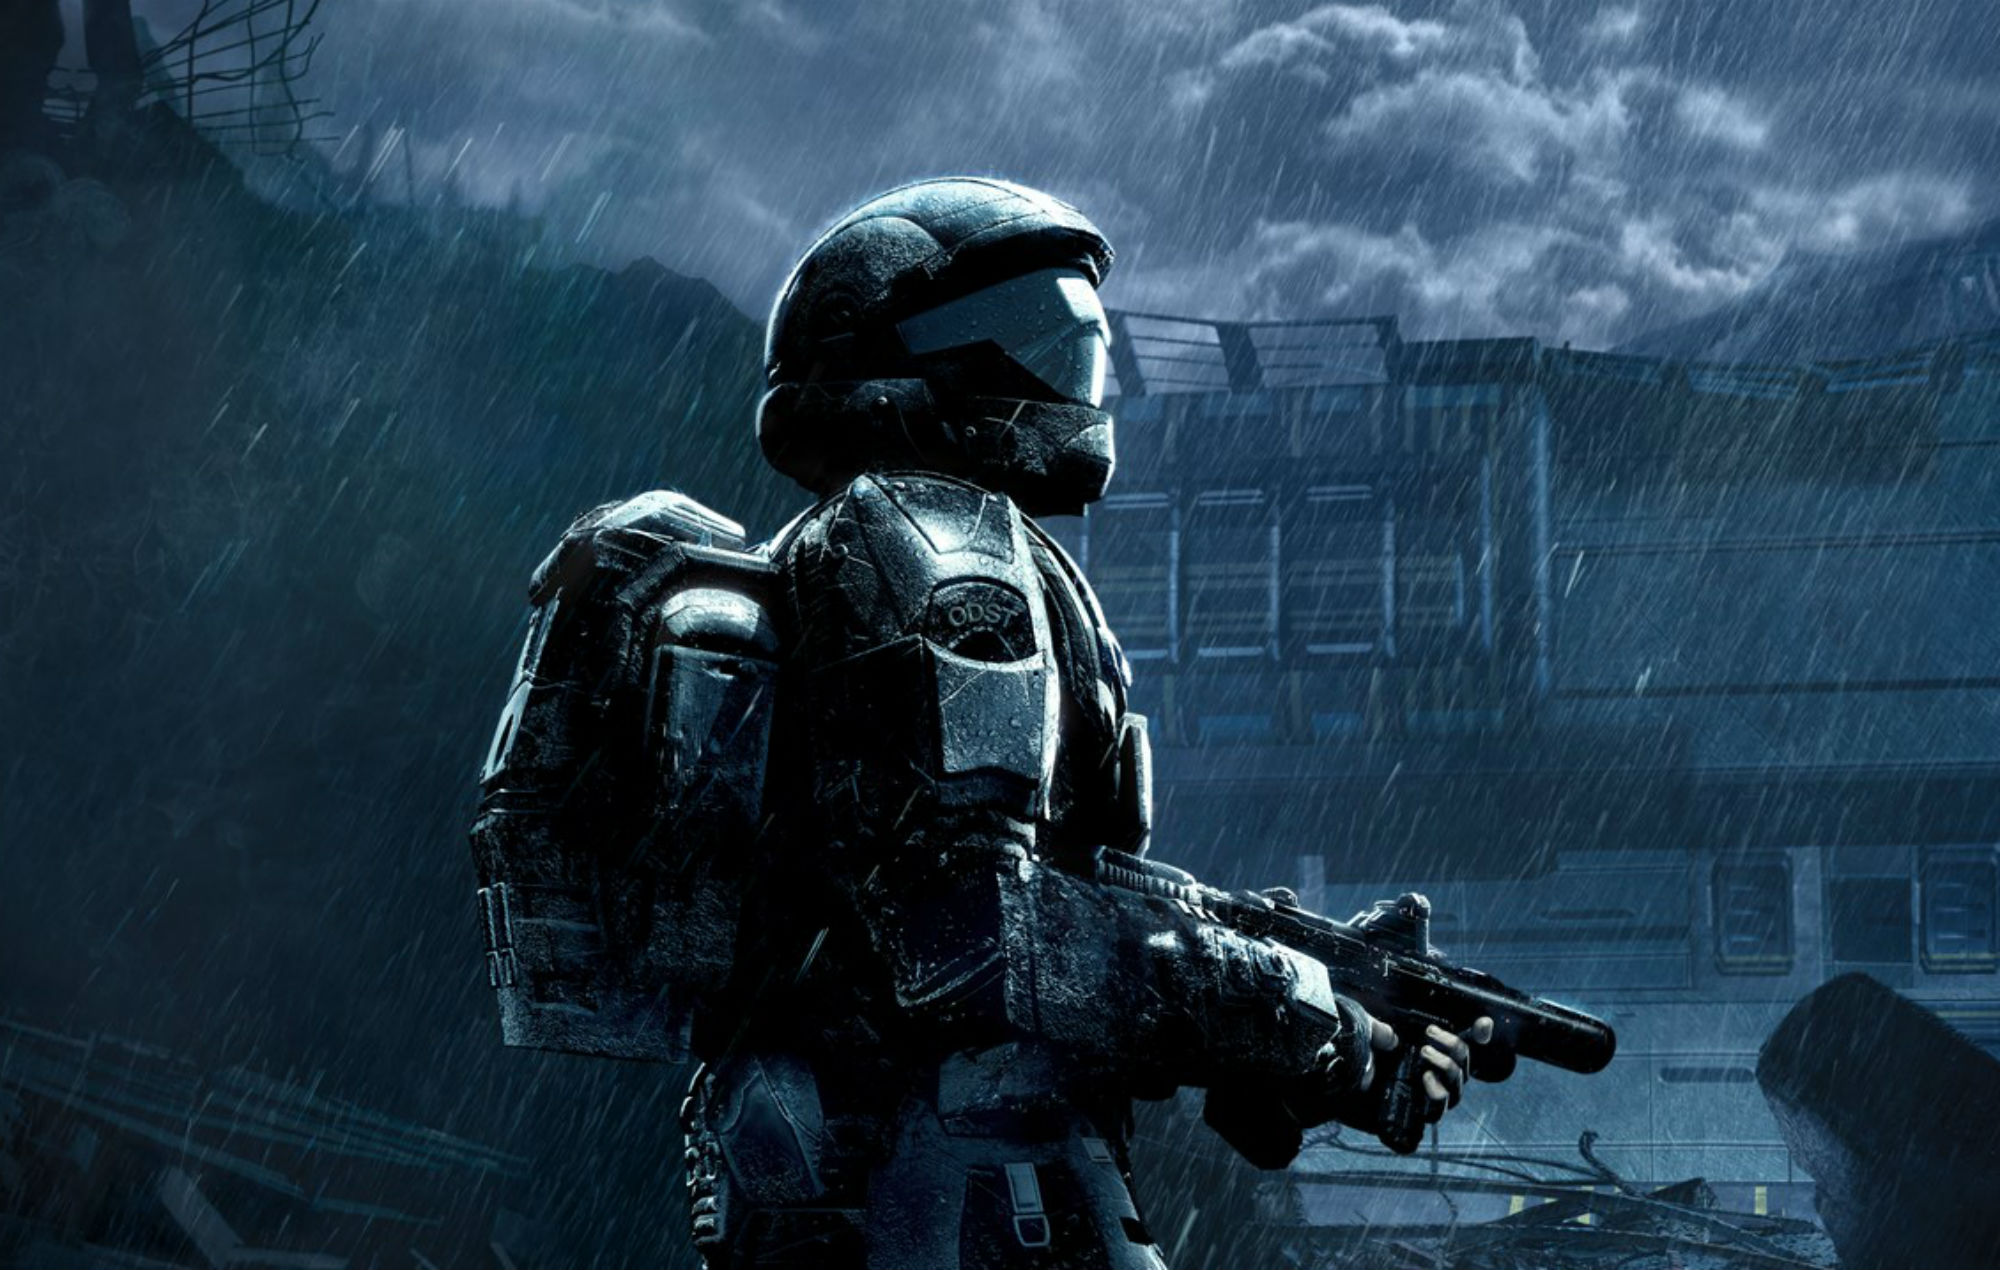 Halo 3 Odst Firefight Is Coming To The Master Chief